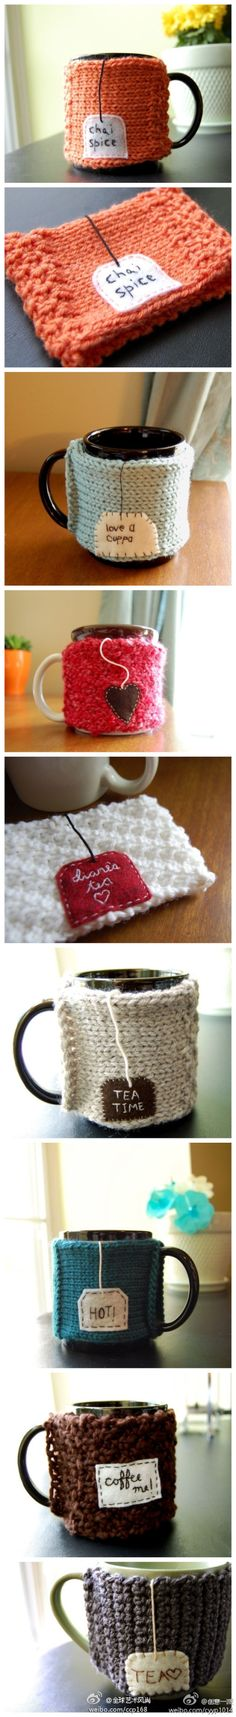 Clever and cute mug cozies.